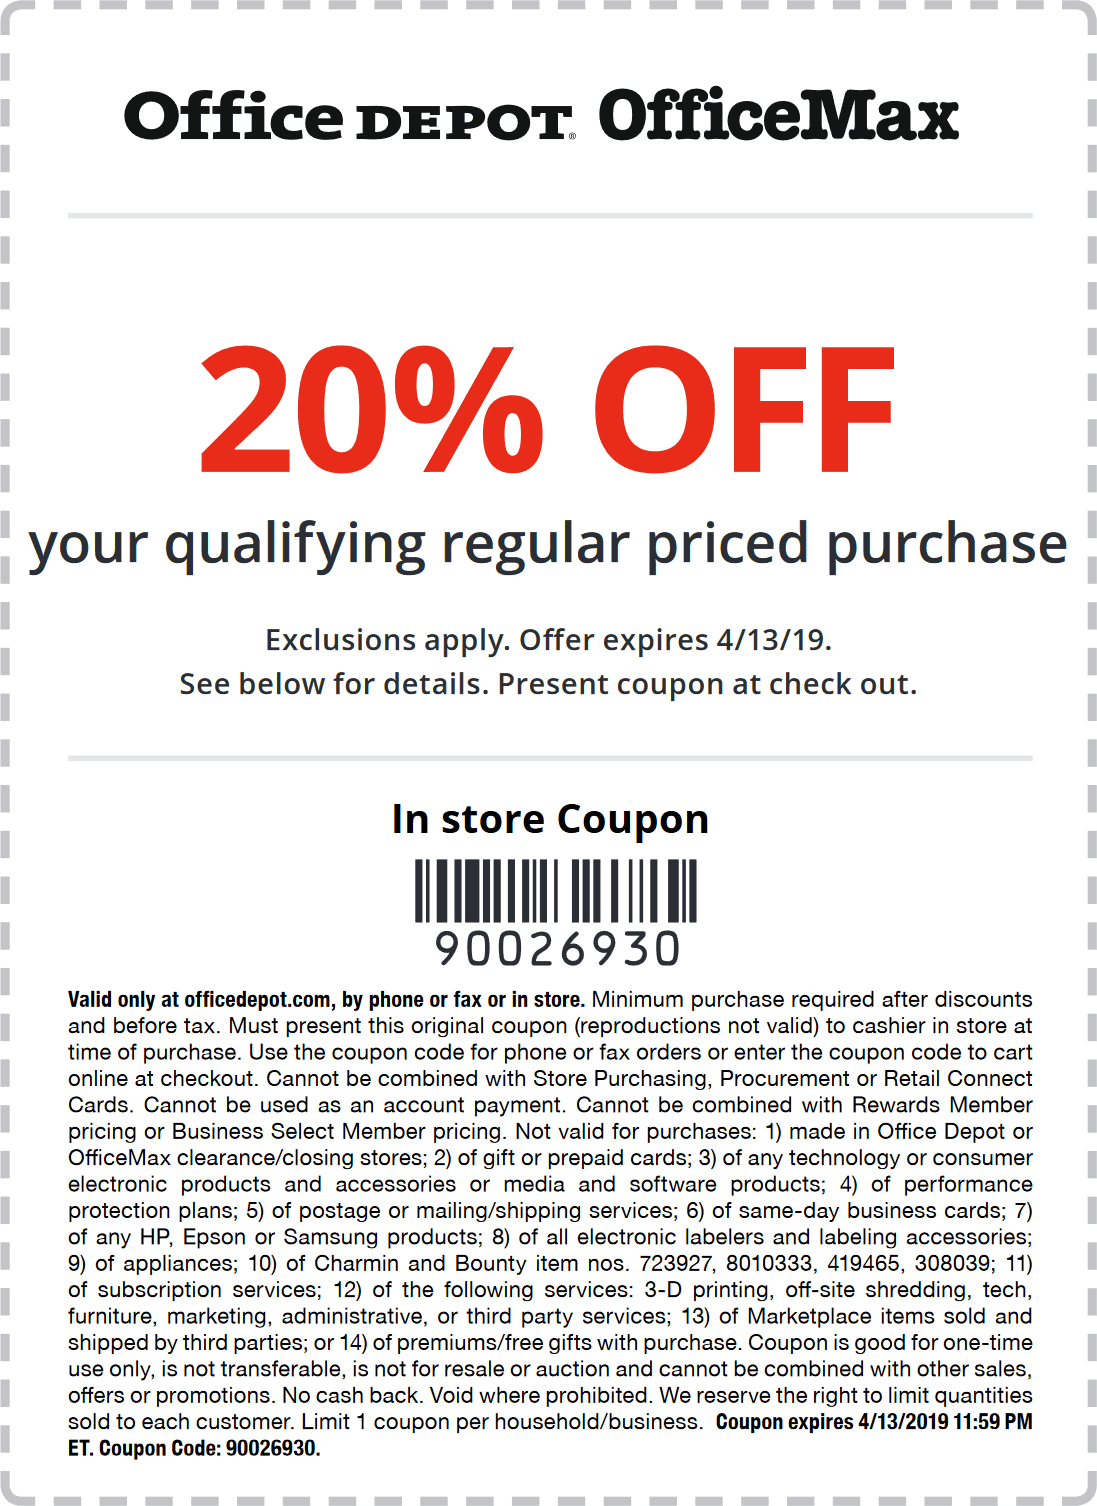 Office Depot Coupon November 2019 20% off at Office Depot & OfficeMax, or online via promo code 90026930